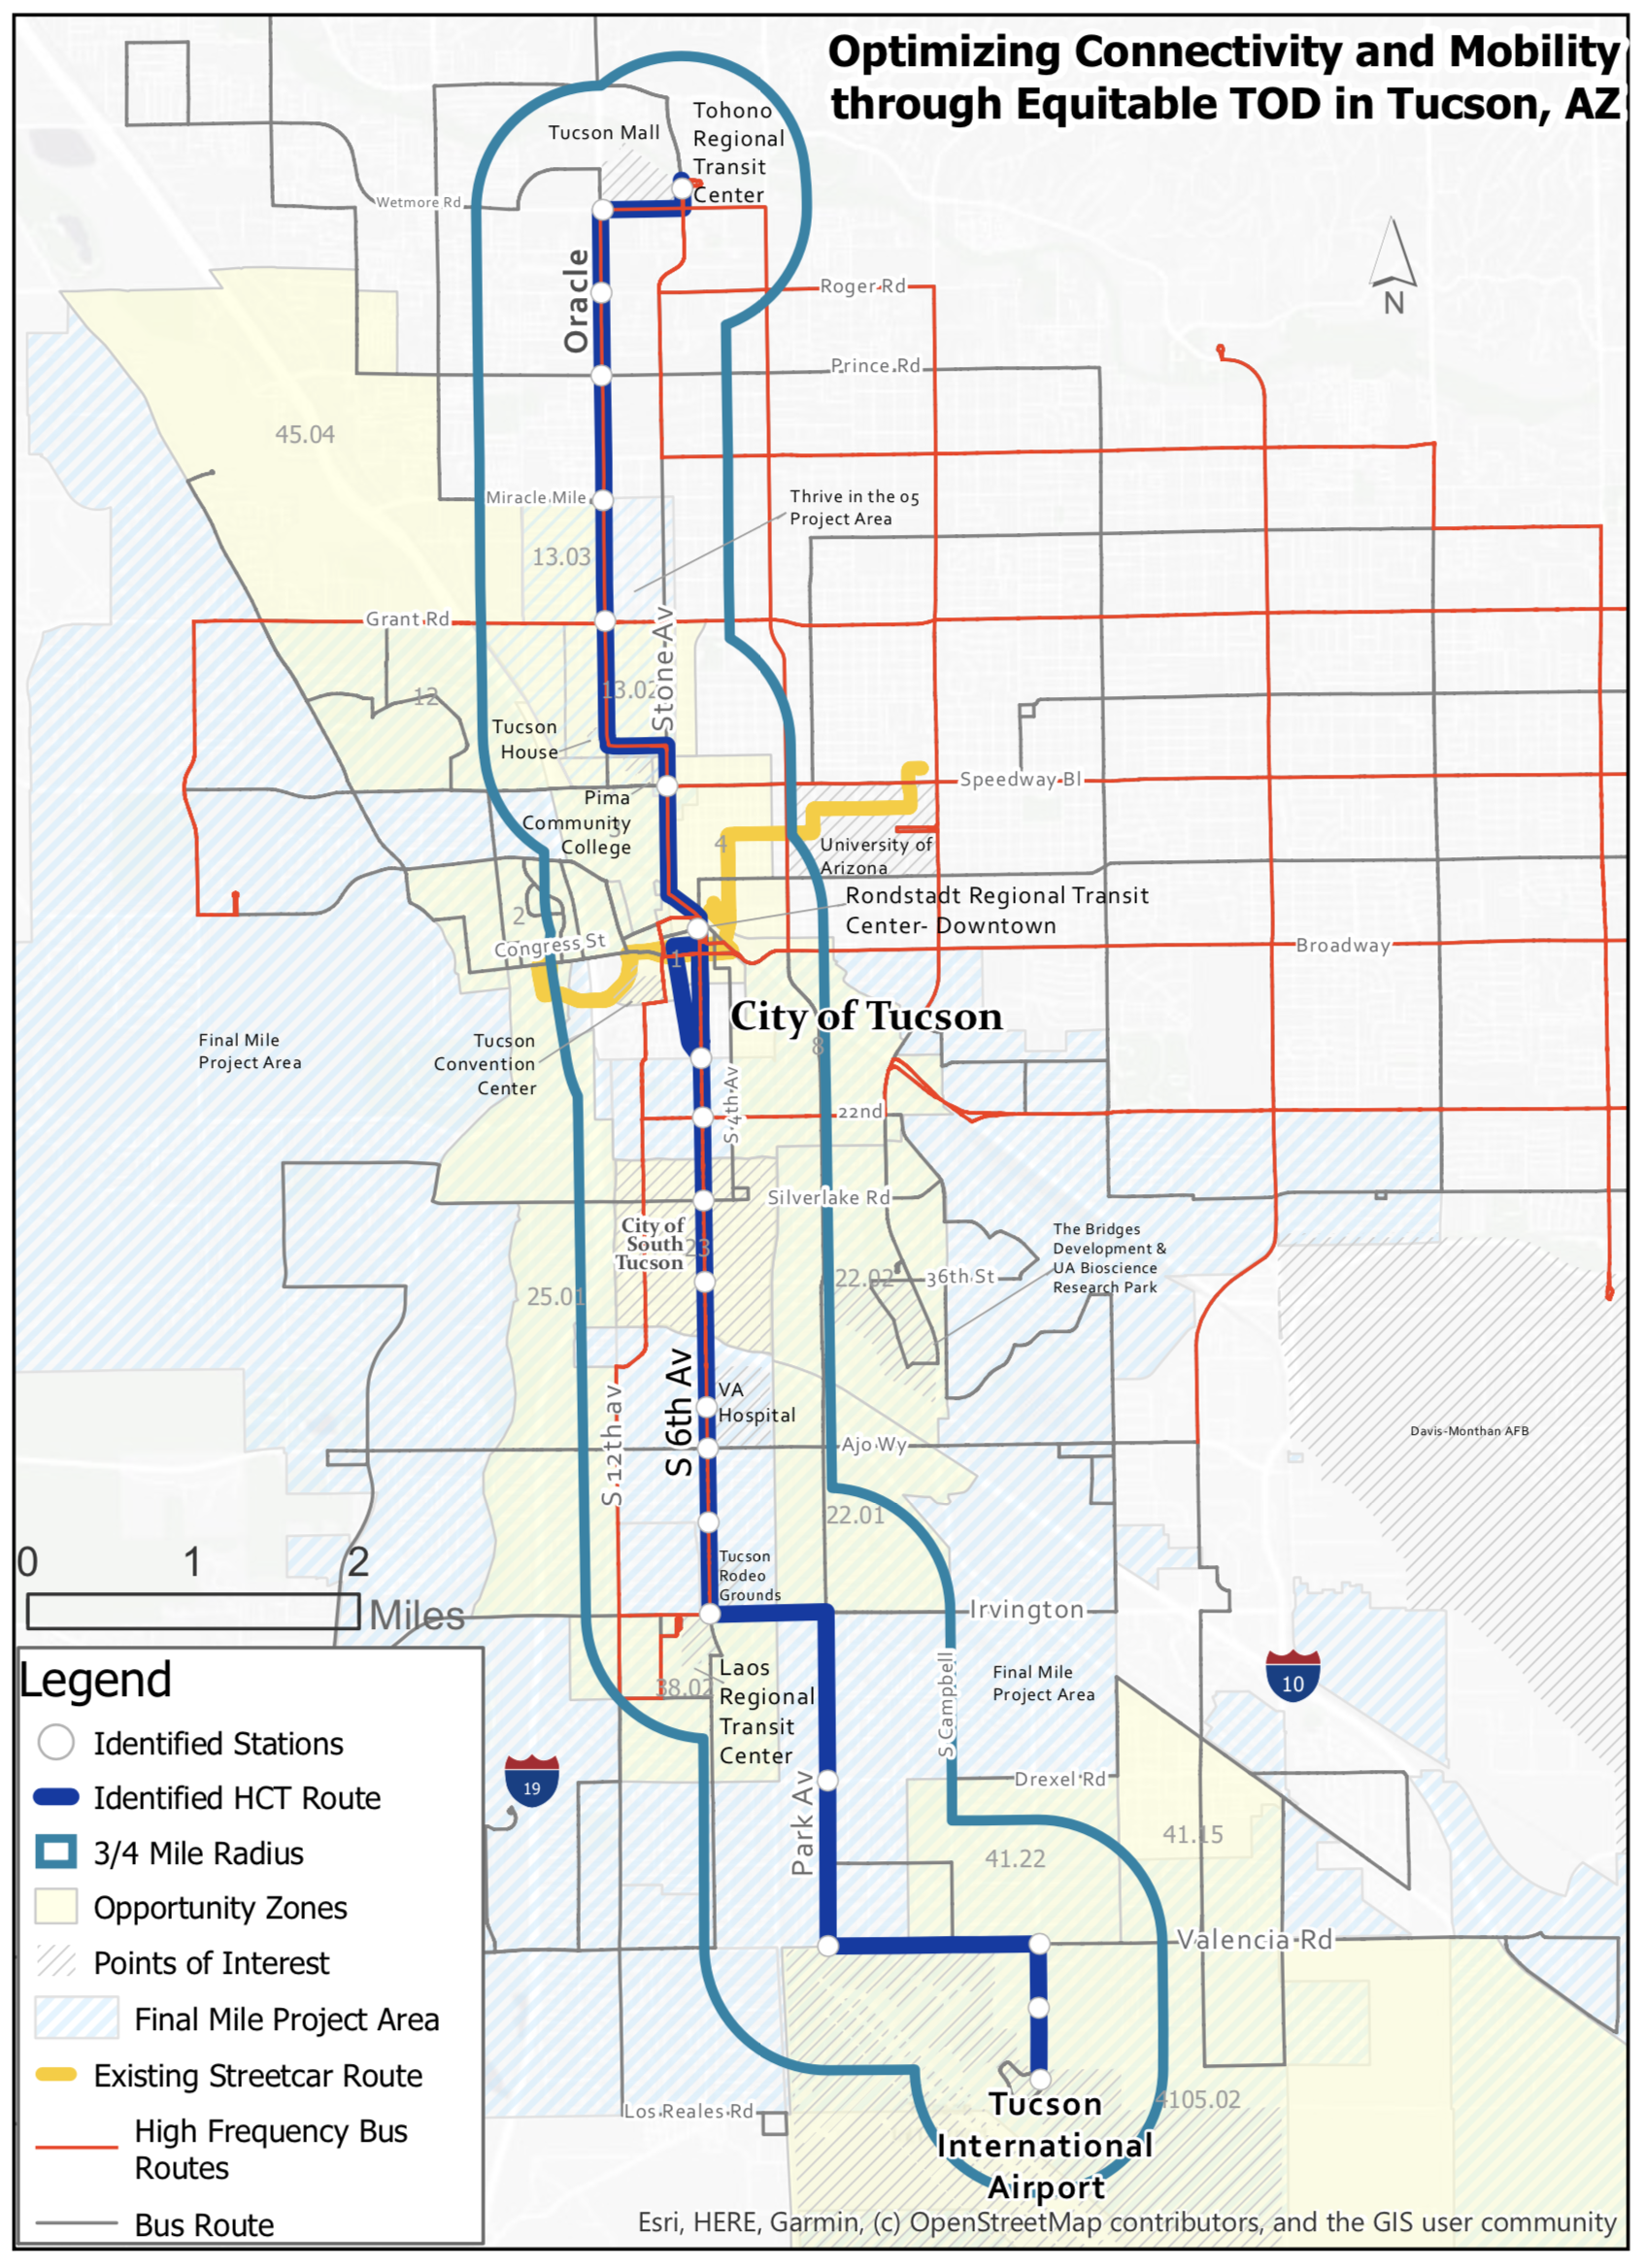 New streetcar route